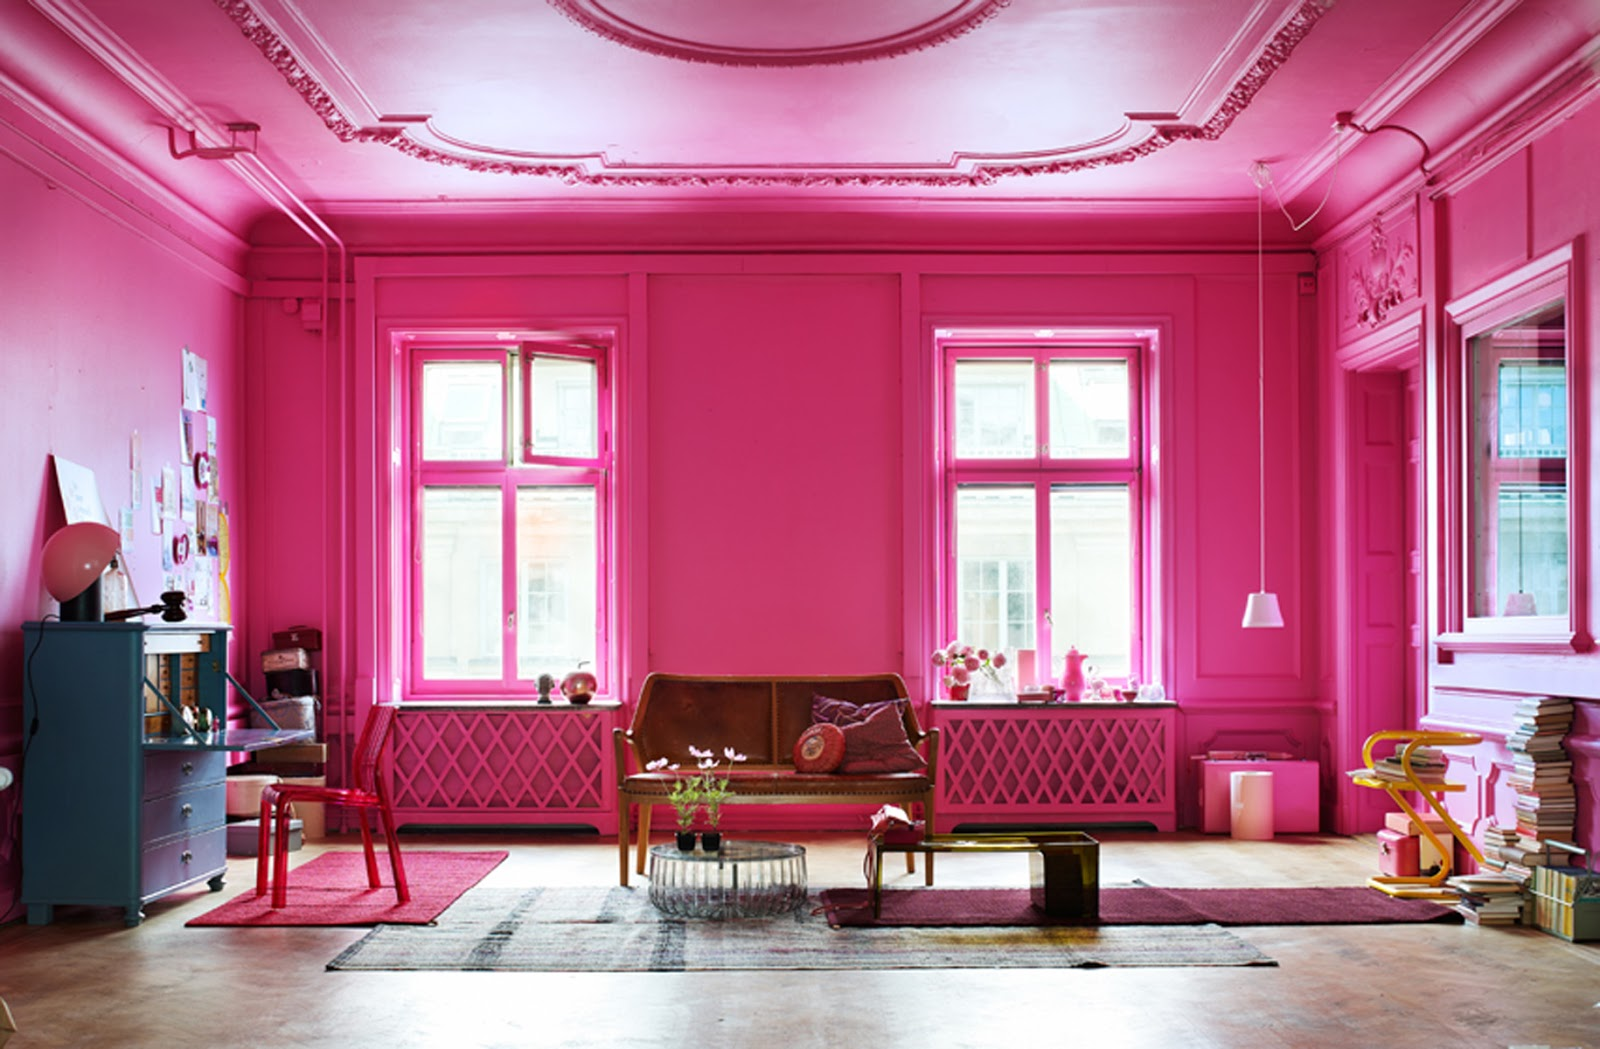 Woonkamer Roze 10 Amazing Pink Living Room Interior Design Ideas